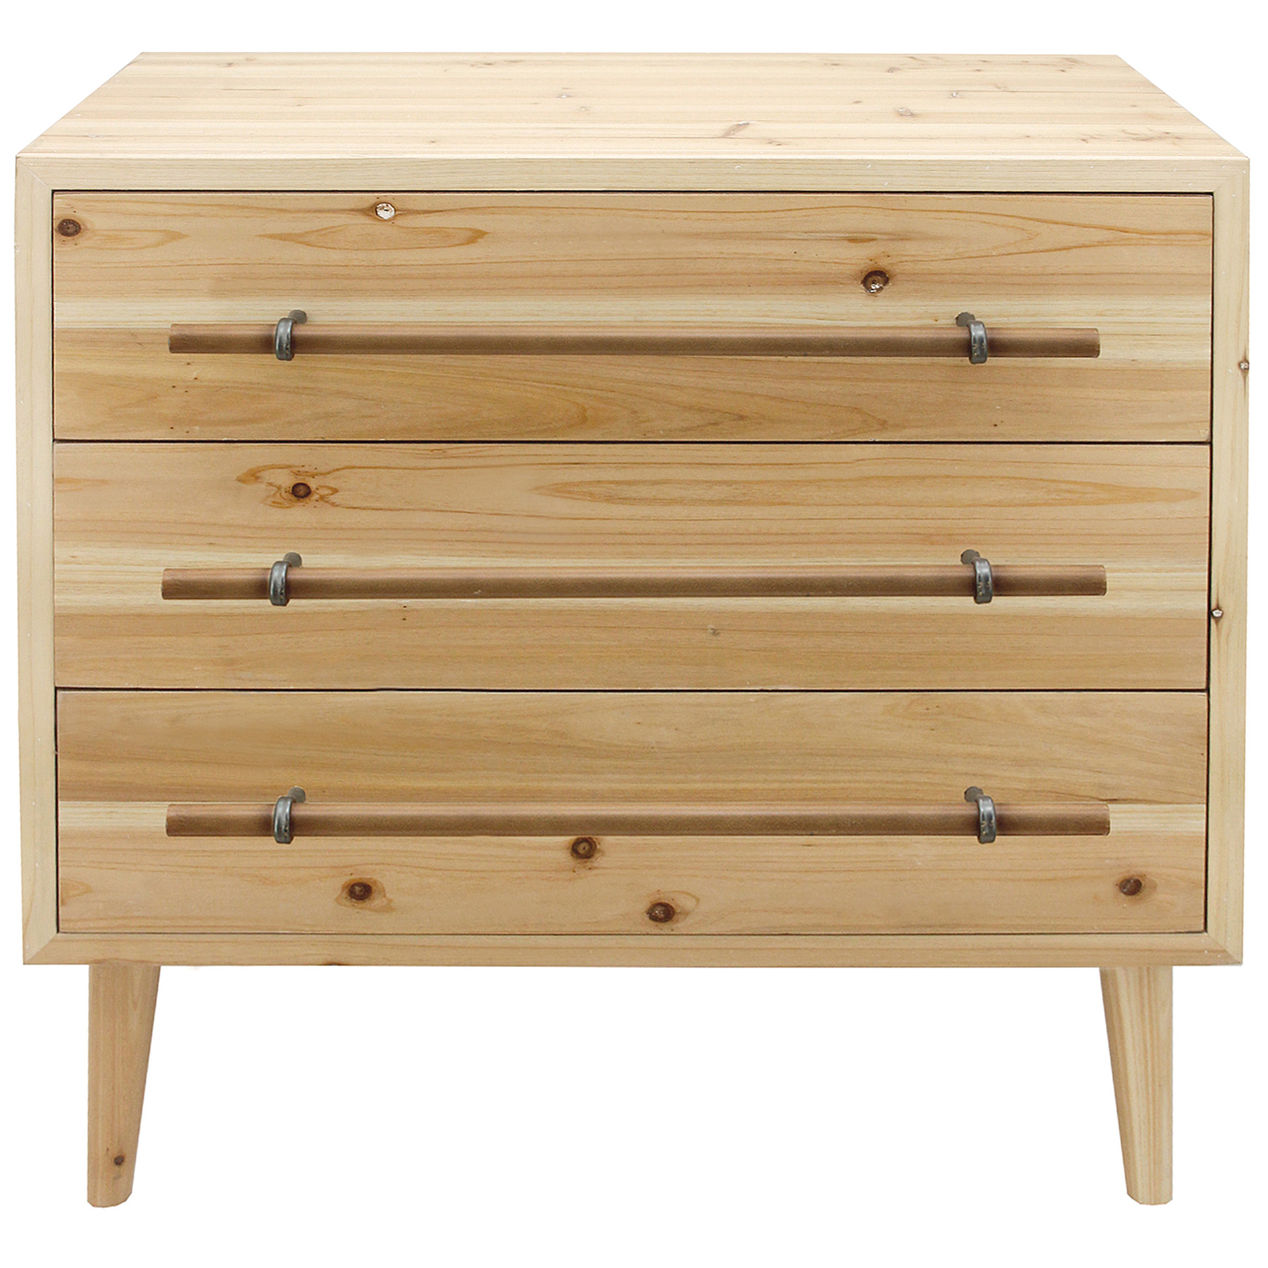 Unstained Pine Drawer Fronts With